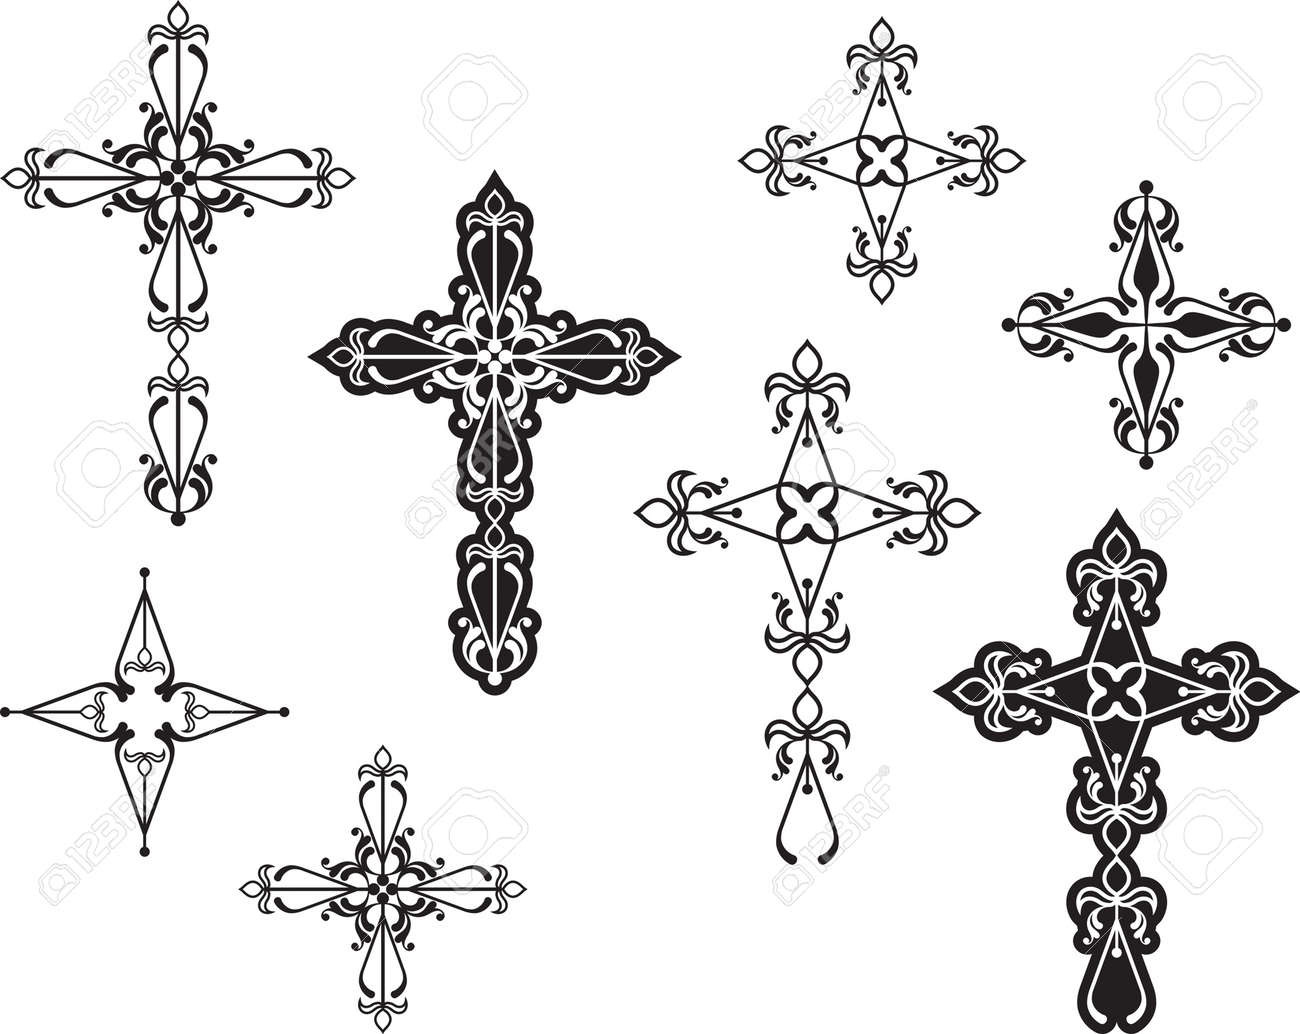 christian cross design vector art royalty free cliparts vectors rh 123rf com royalty free vector art for commercial use Vector Love